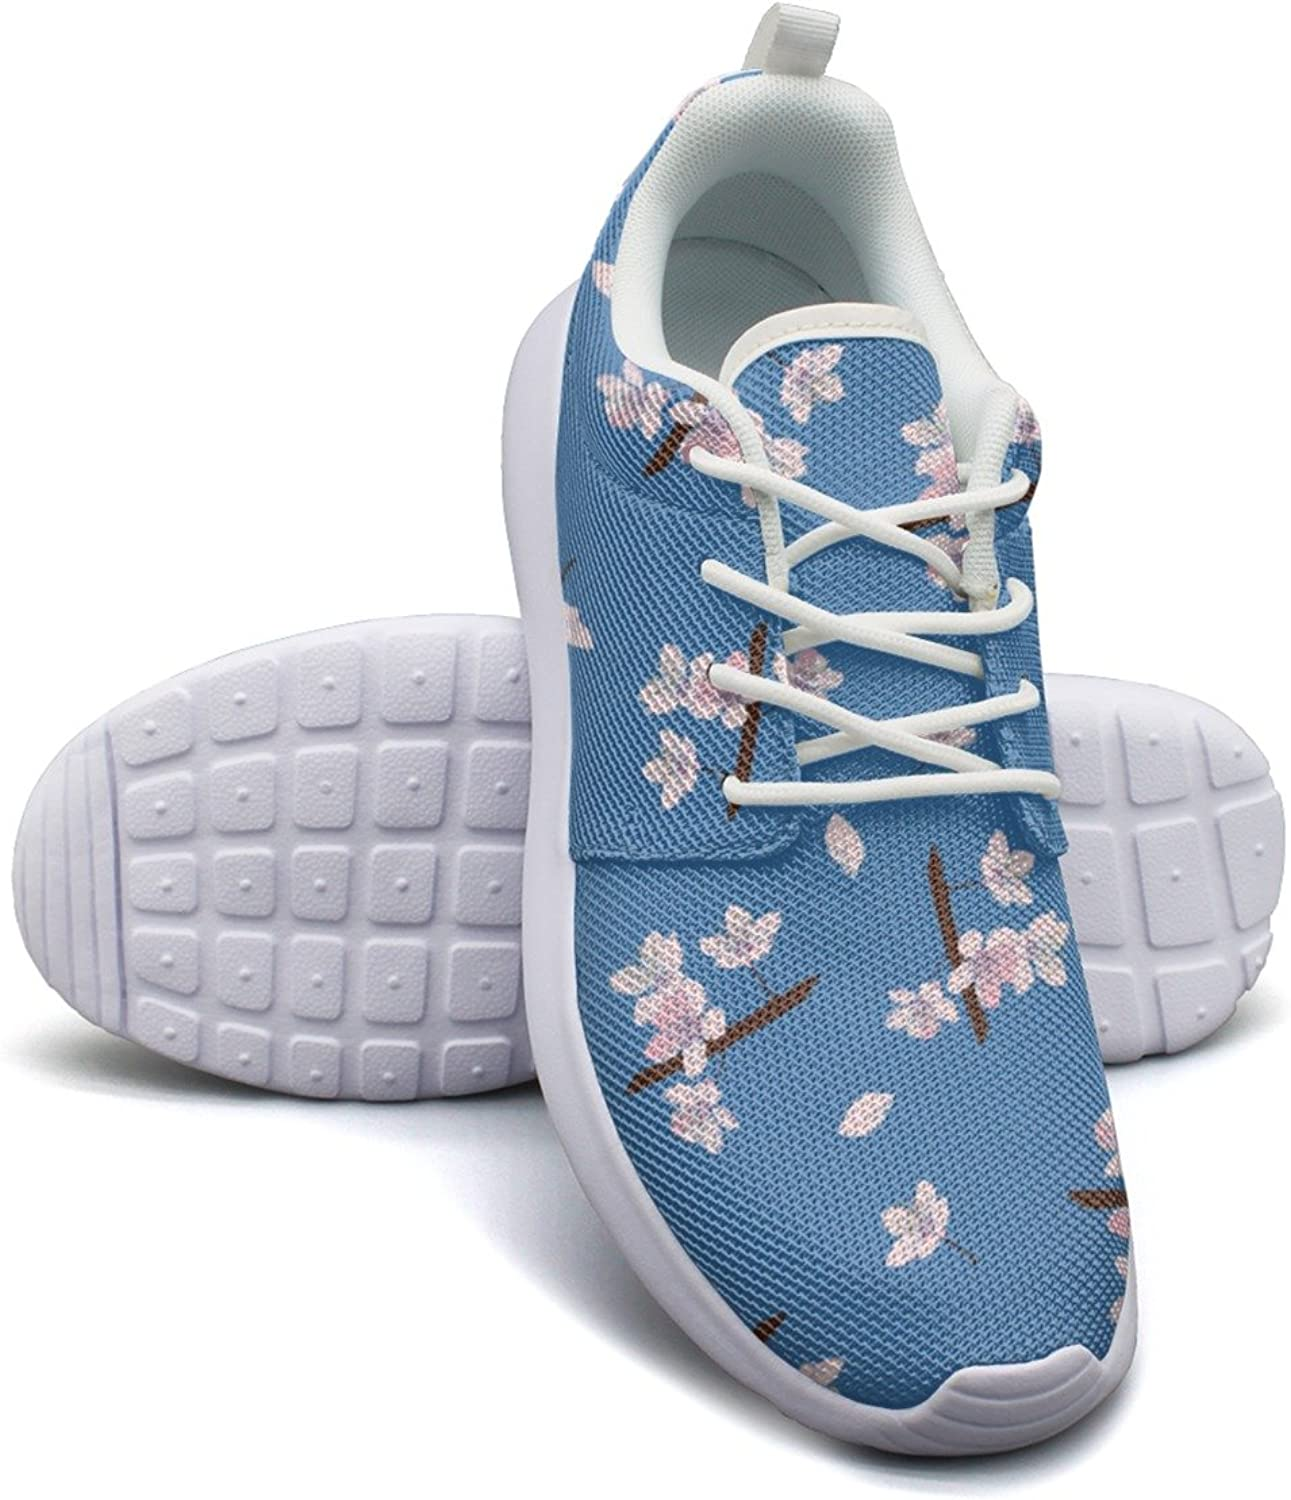 Cherry Blossom Pattern Vector Image Women's Fashion Sneakers shoes Hip Hop Mesh Lightweight Tennis Sneakers